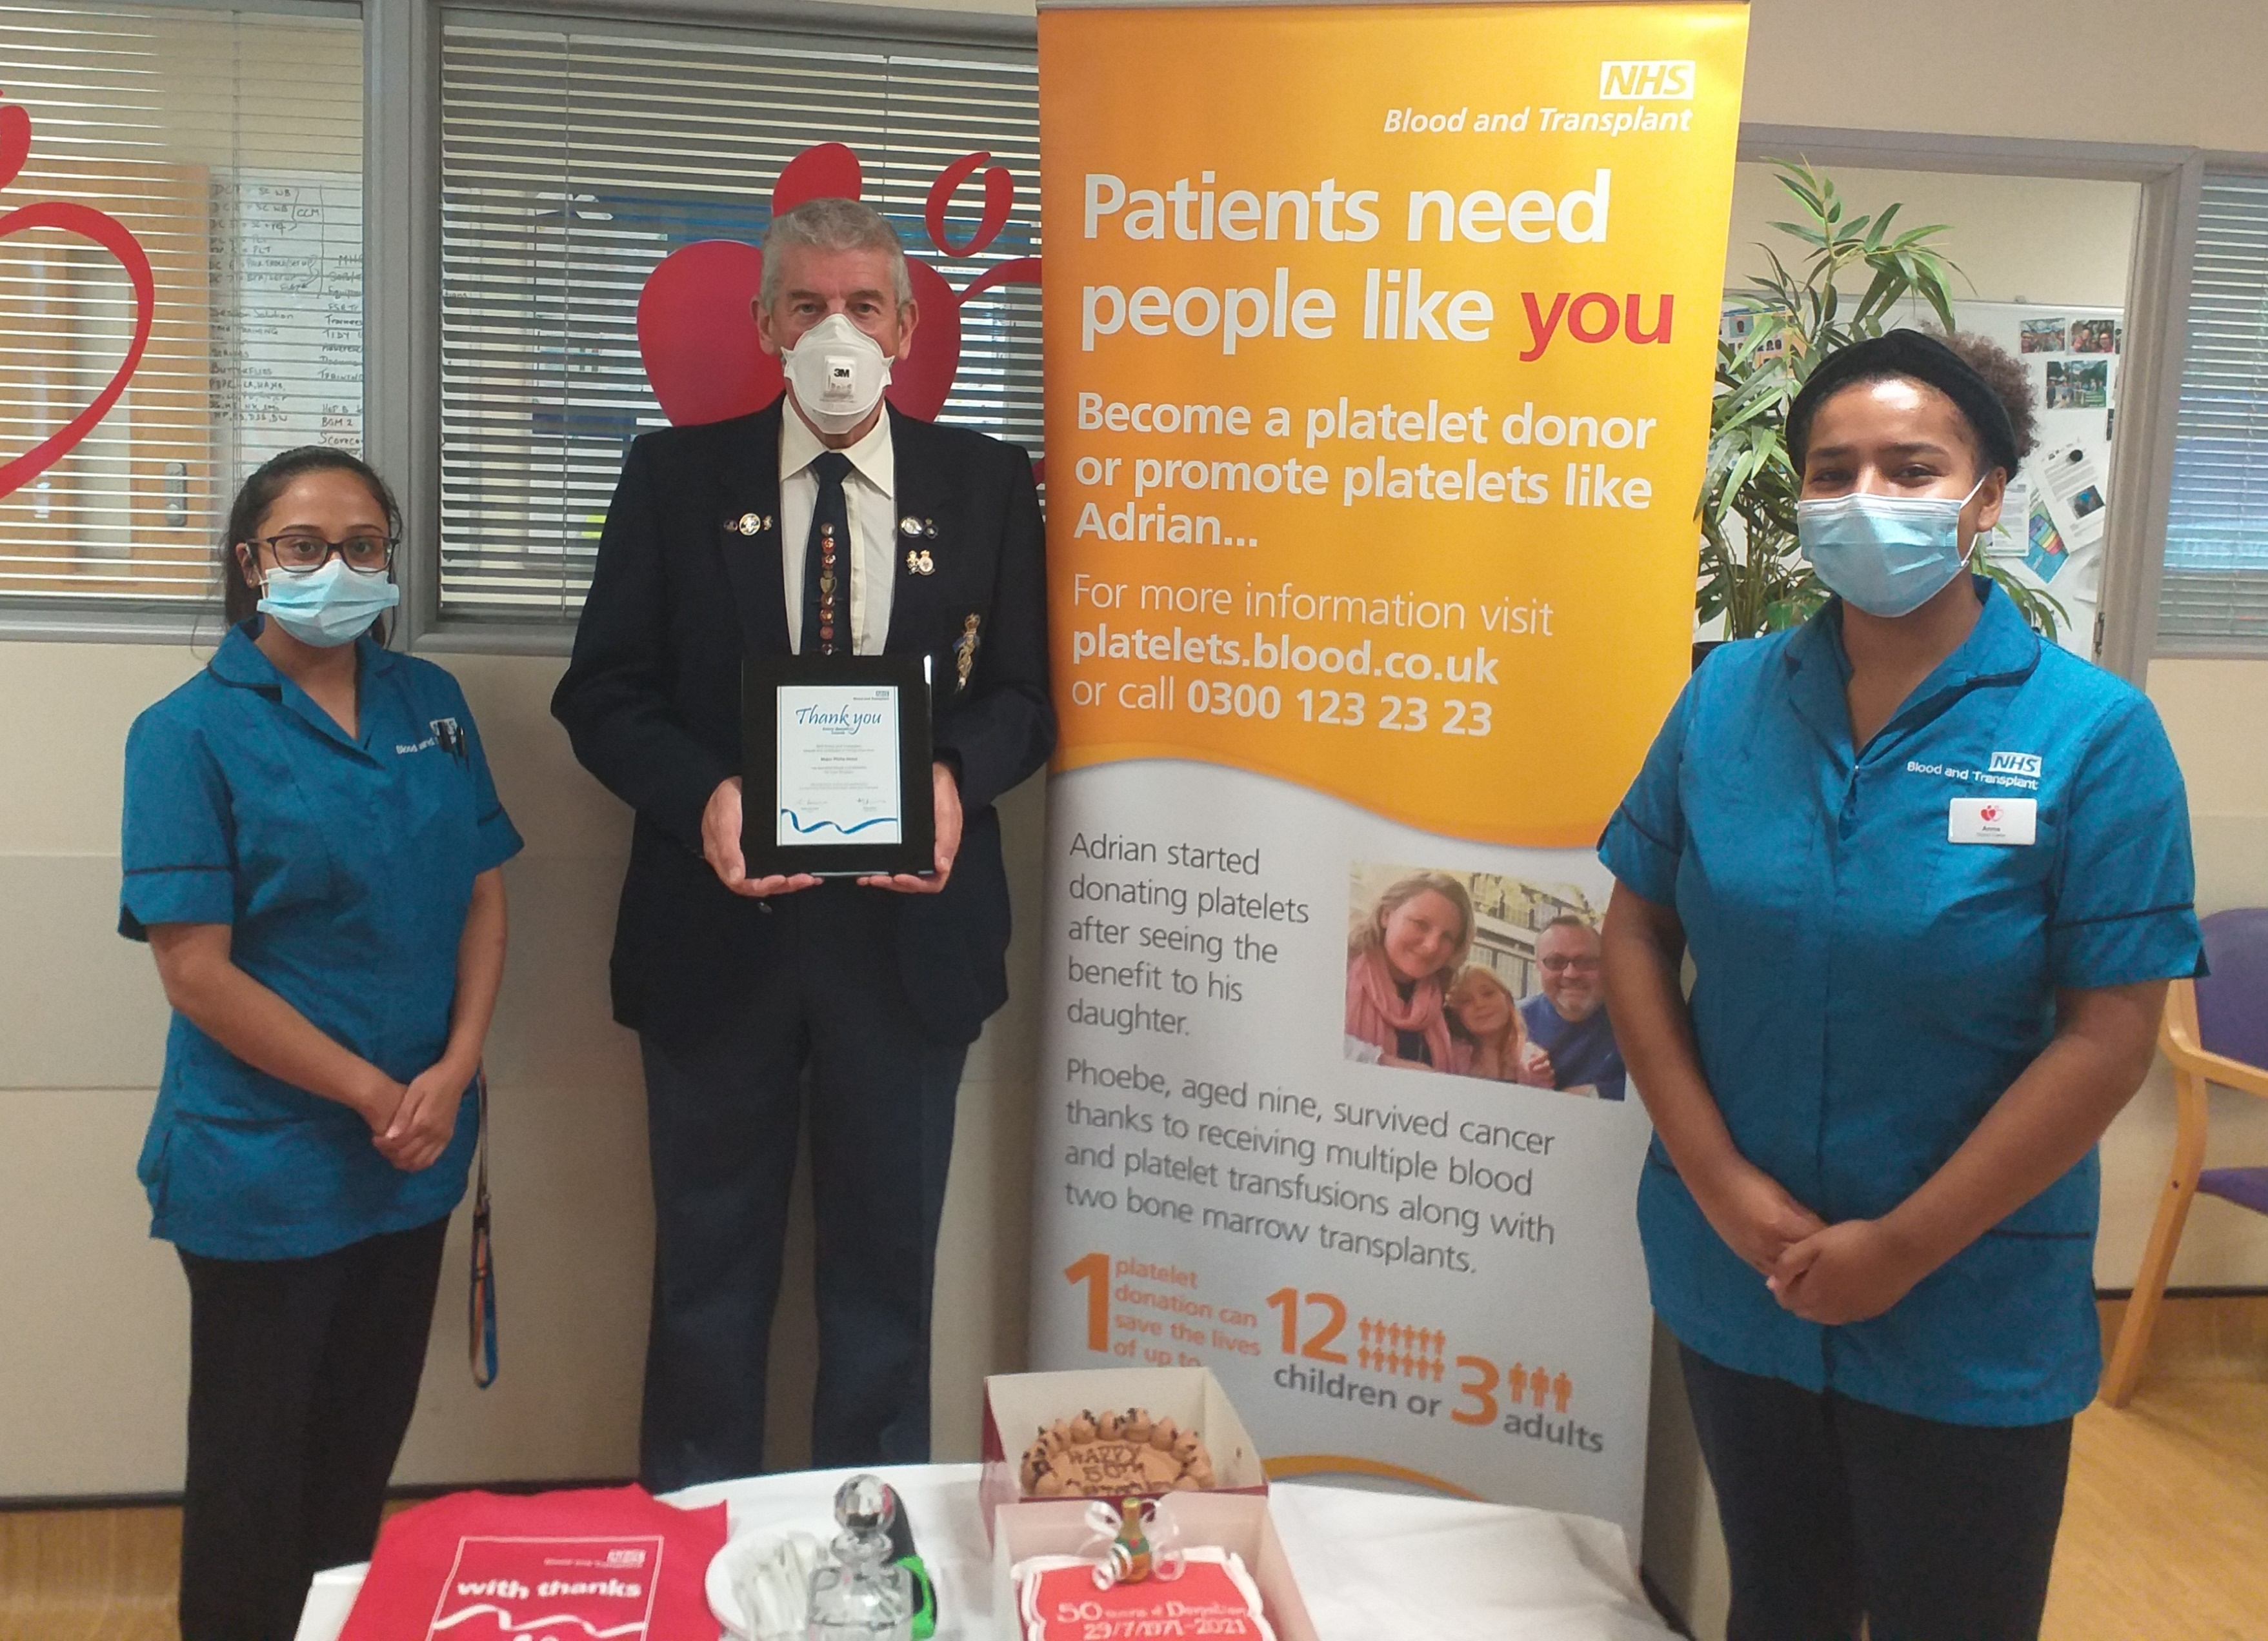 Phil celebrating his 50th anniversary at Tooting Donor Centre